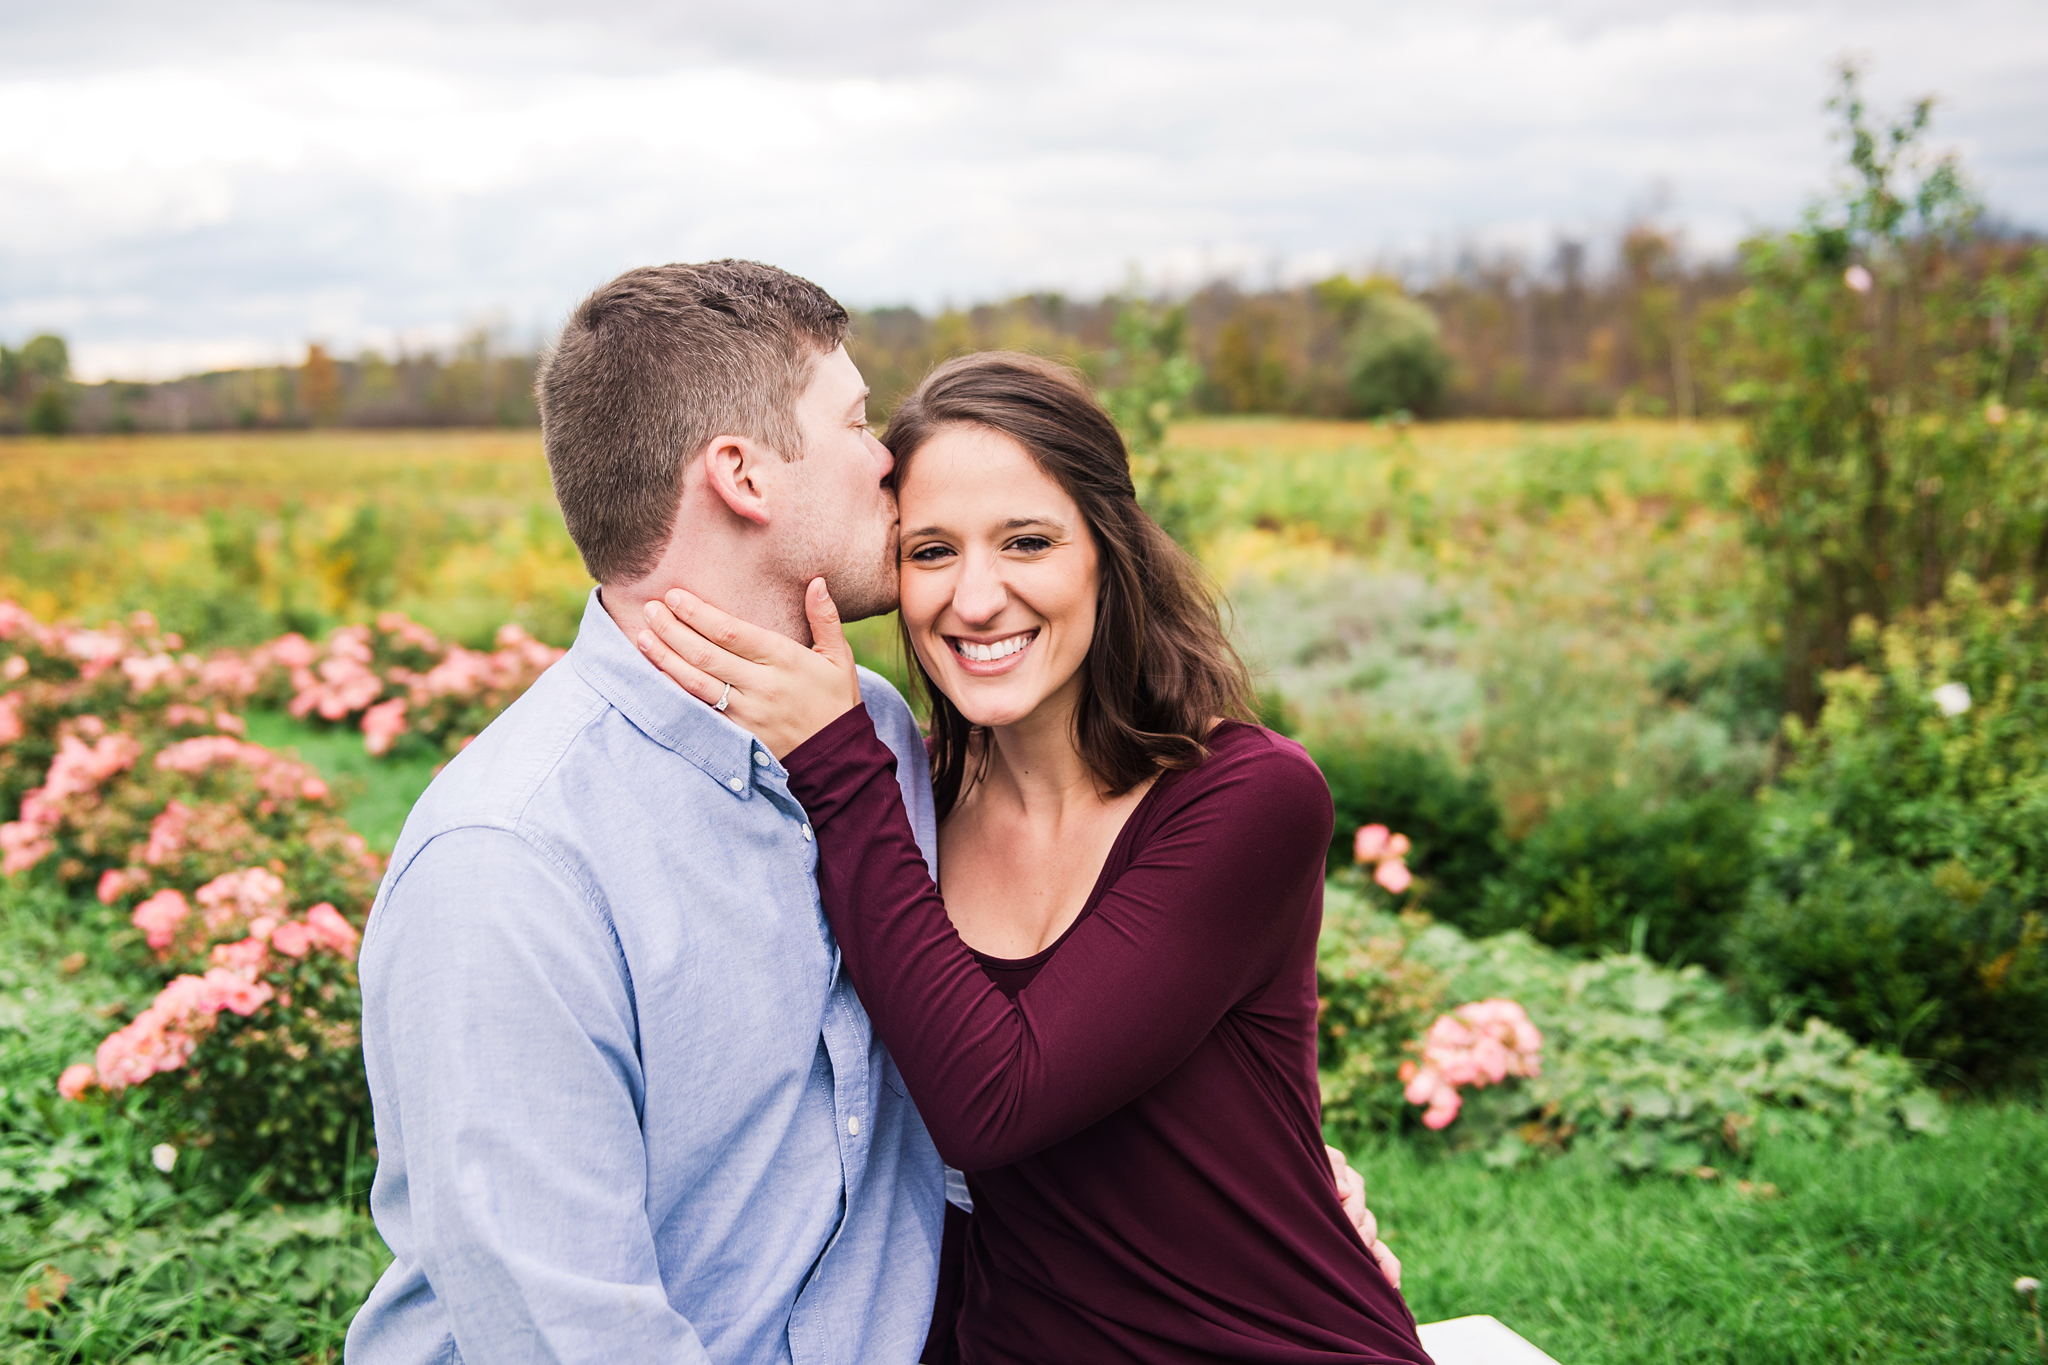 Hurd_Orchards_Rochester_Engagement_Session_JILL_STUDIO_Rochester_NY_Photographer_DSC_2051.jpg